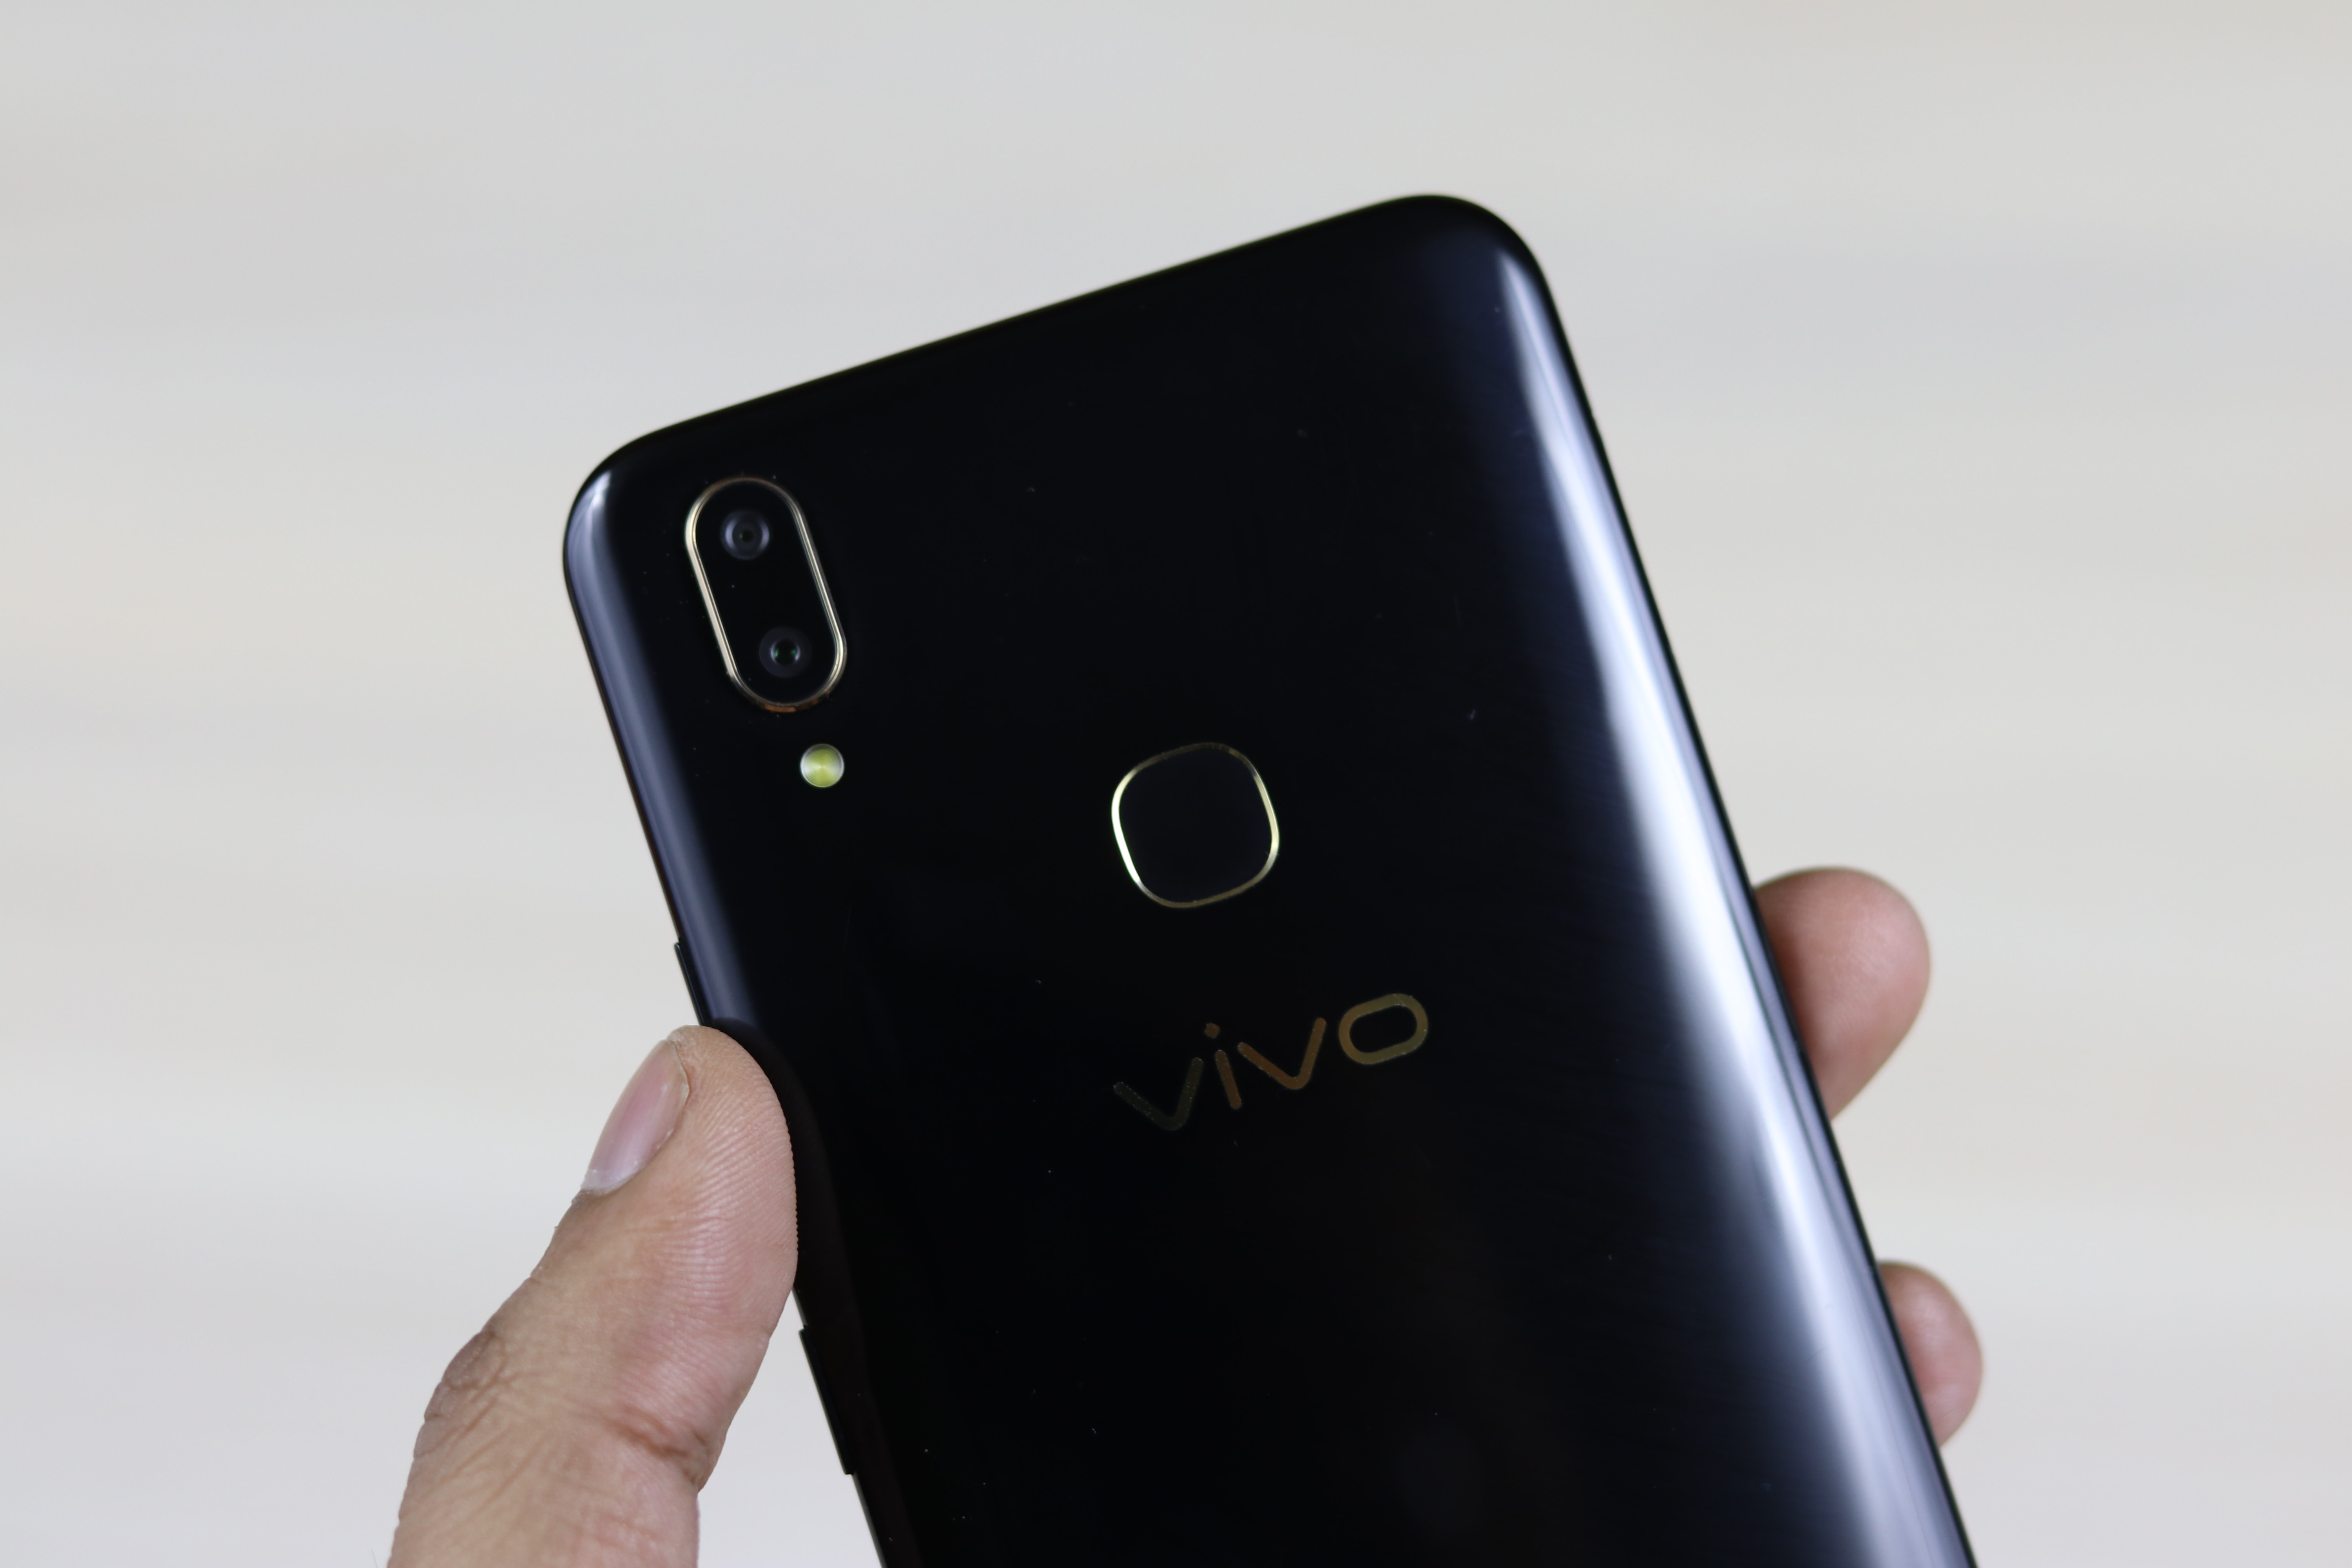 Vivo V9 Pro Review: A Competitive Smartphone Under 20K